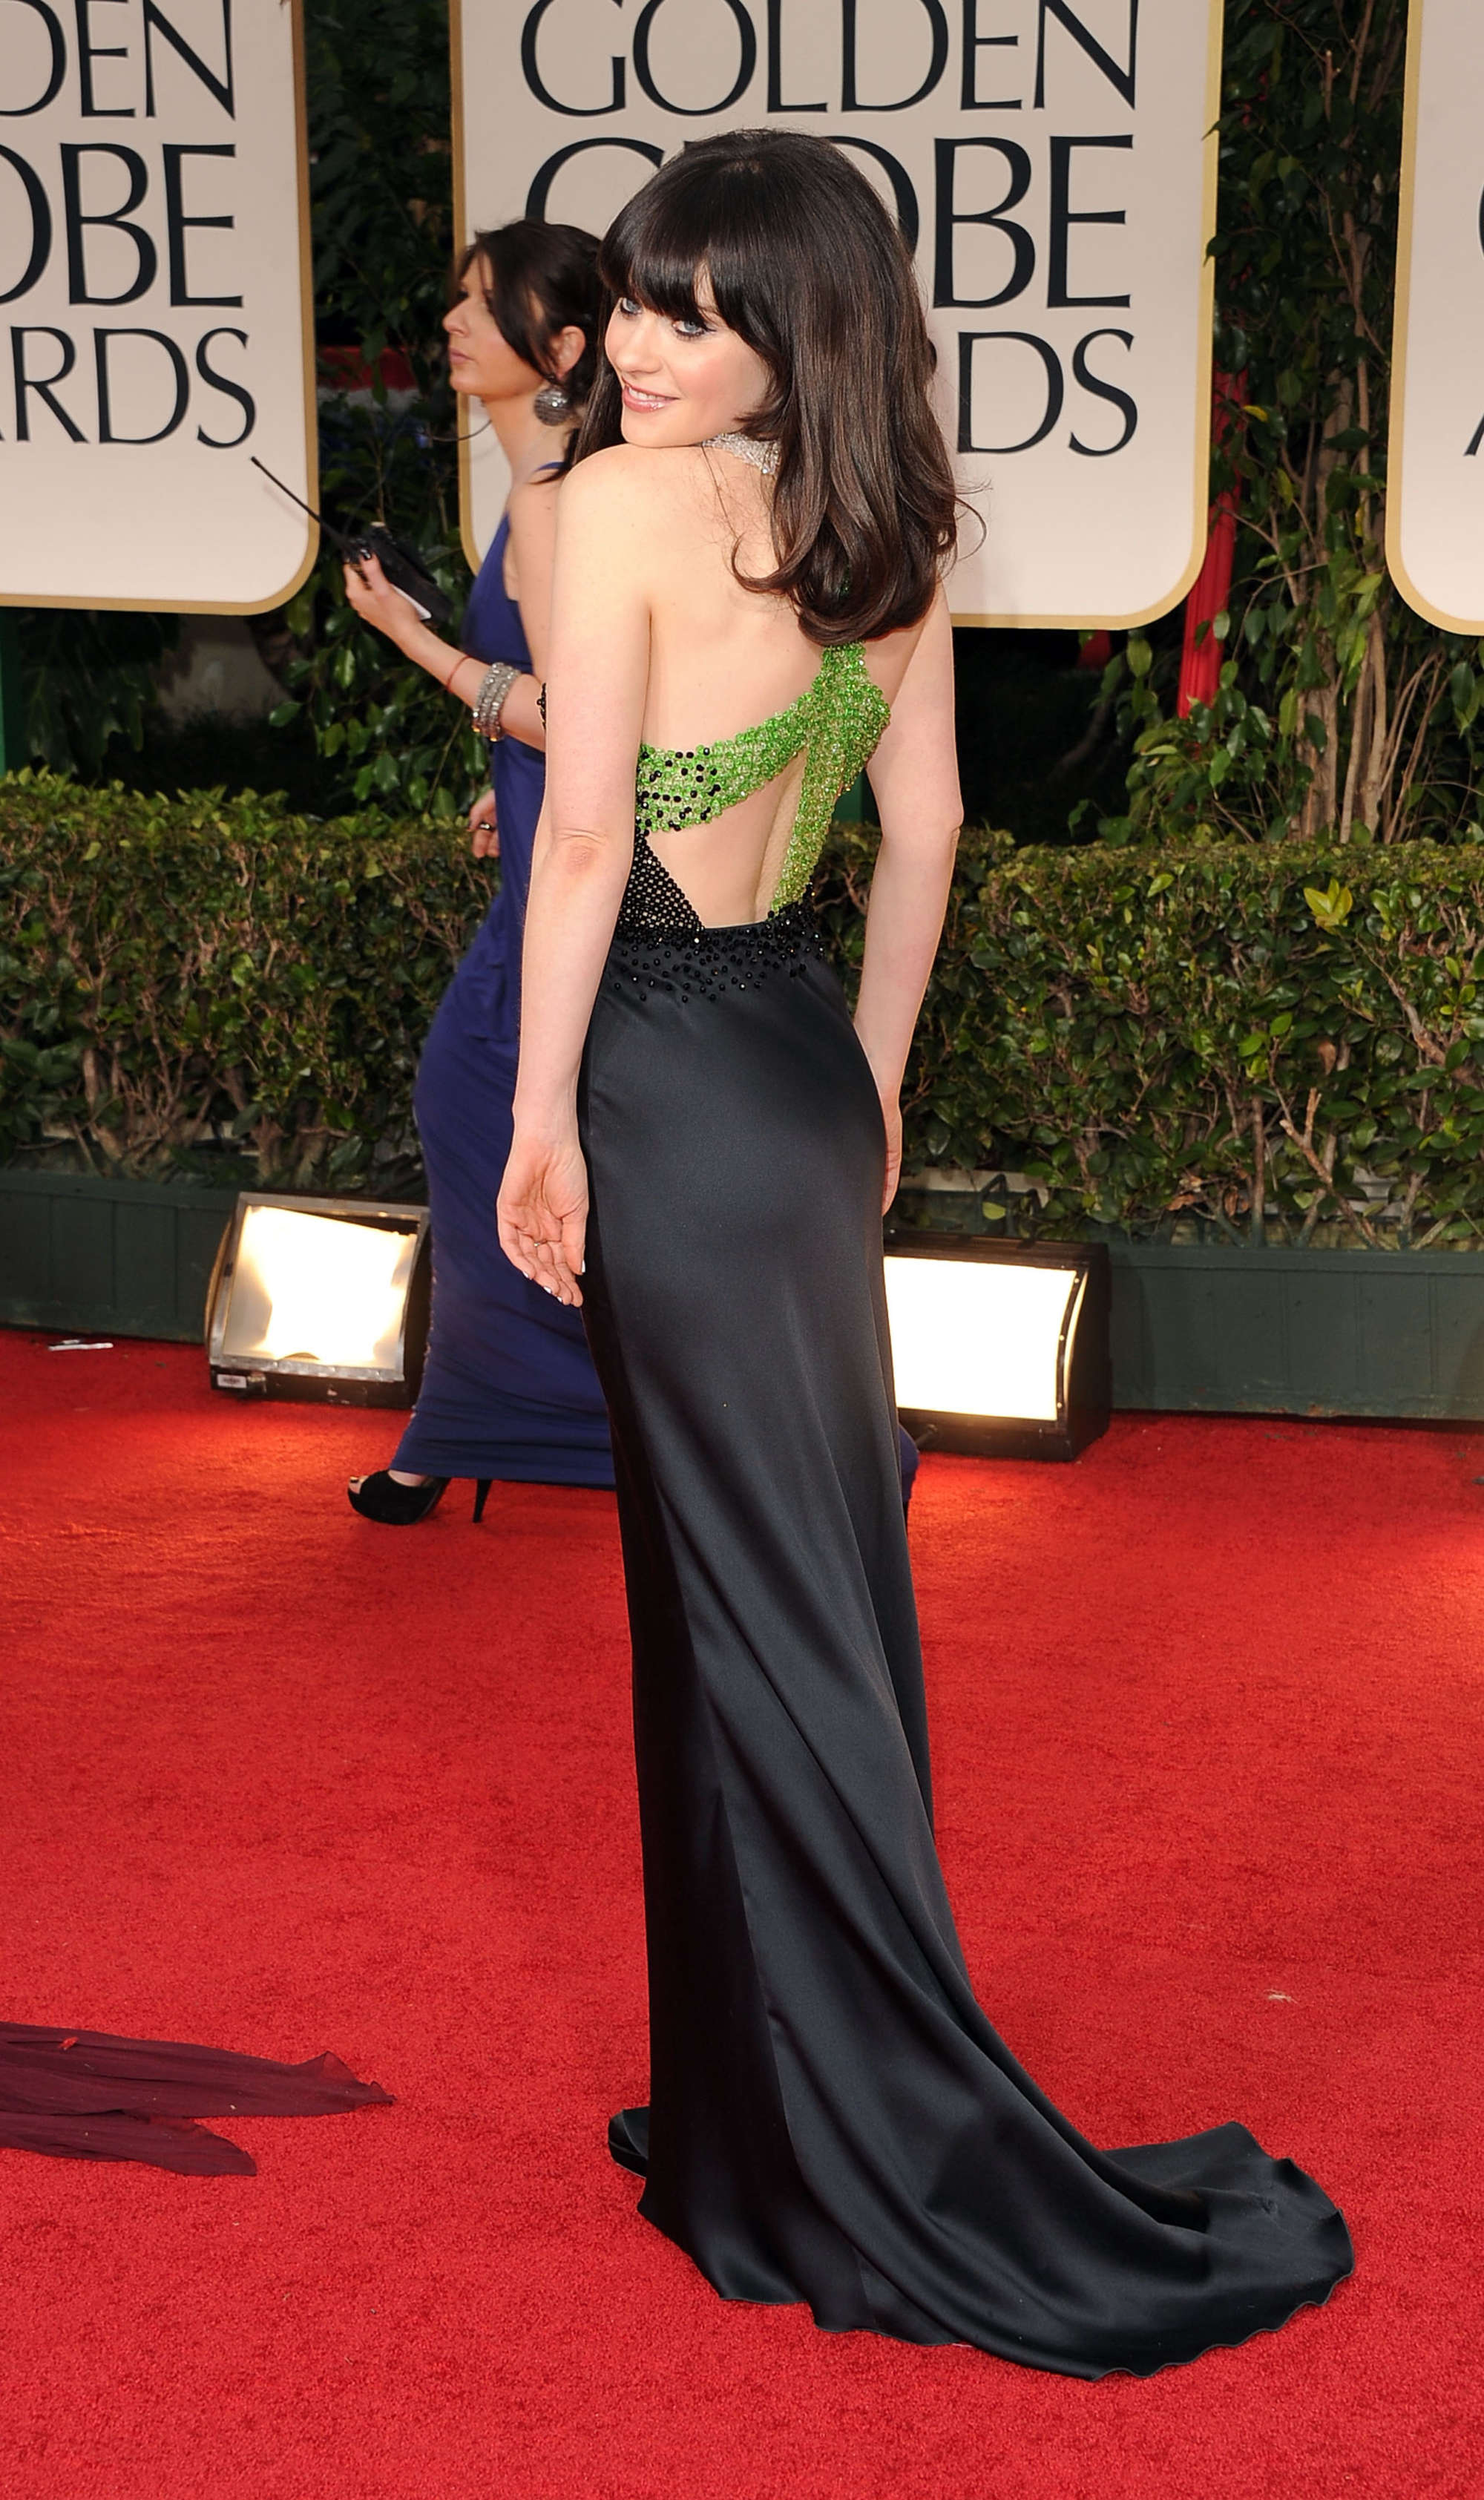 Zooey Deschanel at Golden Globe Awards in Los Angeles